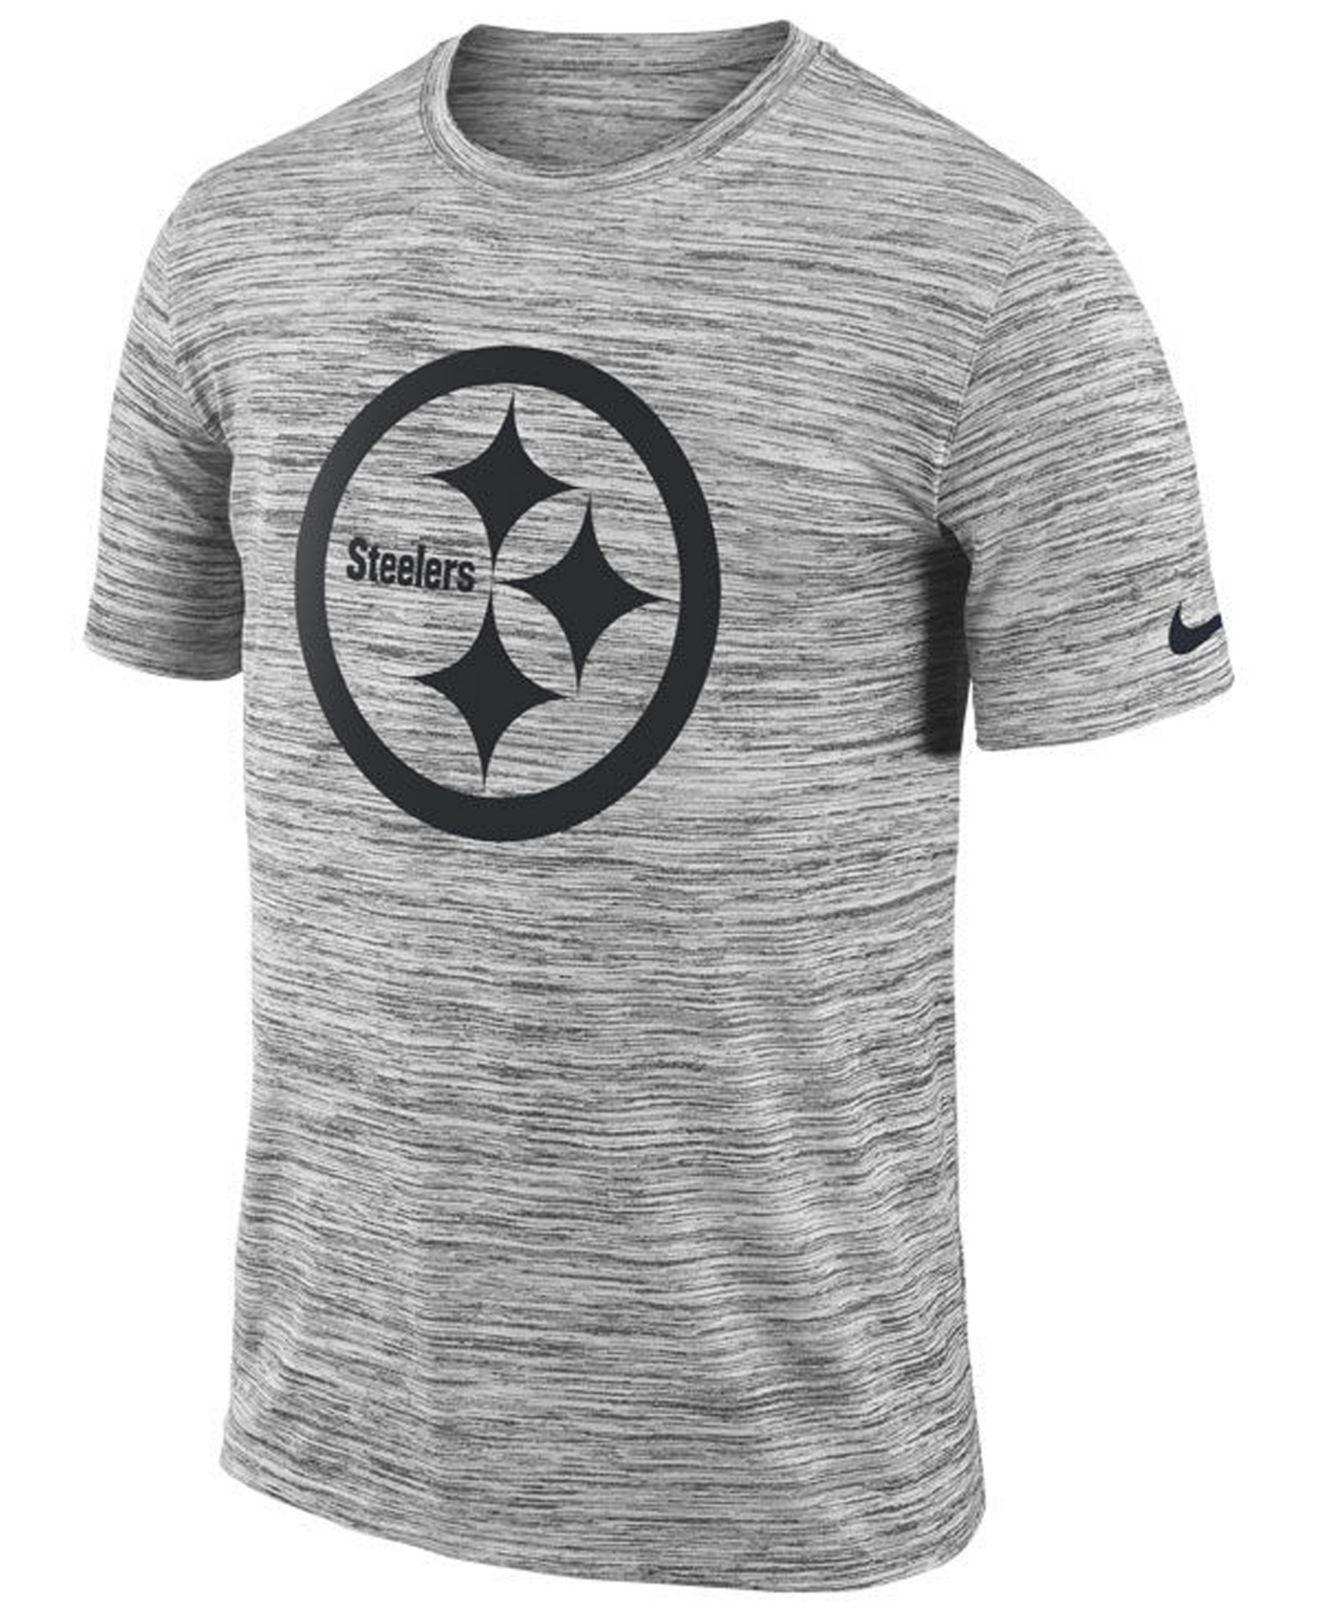 006e87d7 Lyst - Nike Pittsburgh Steelers Legend Velocity Travel T-shirt in ...